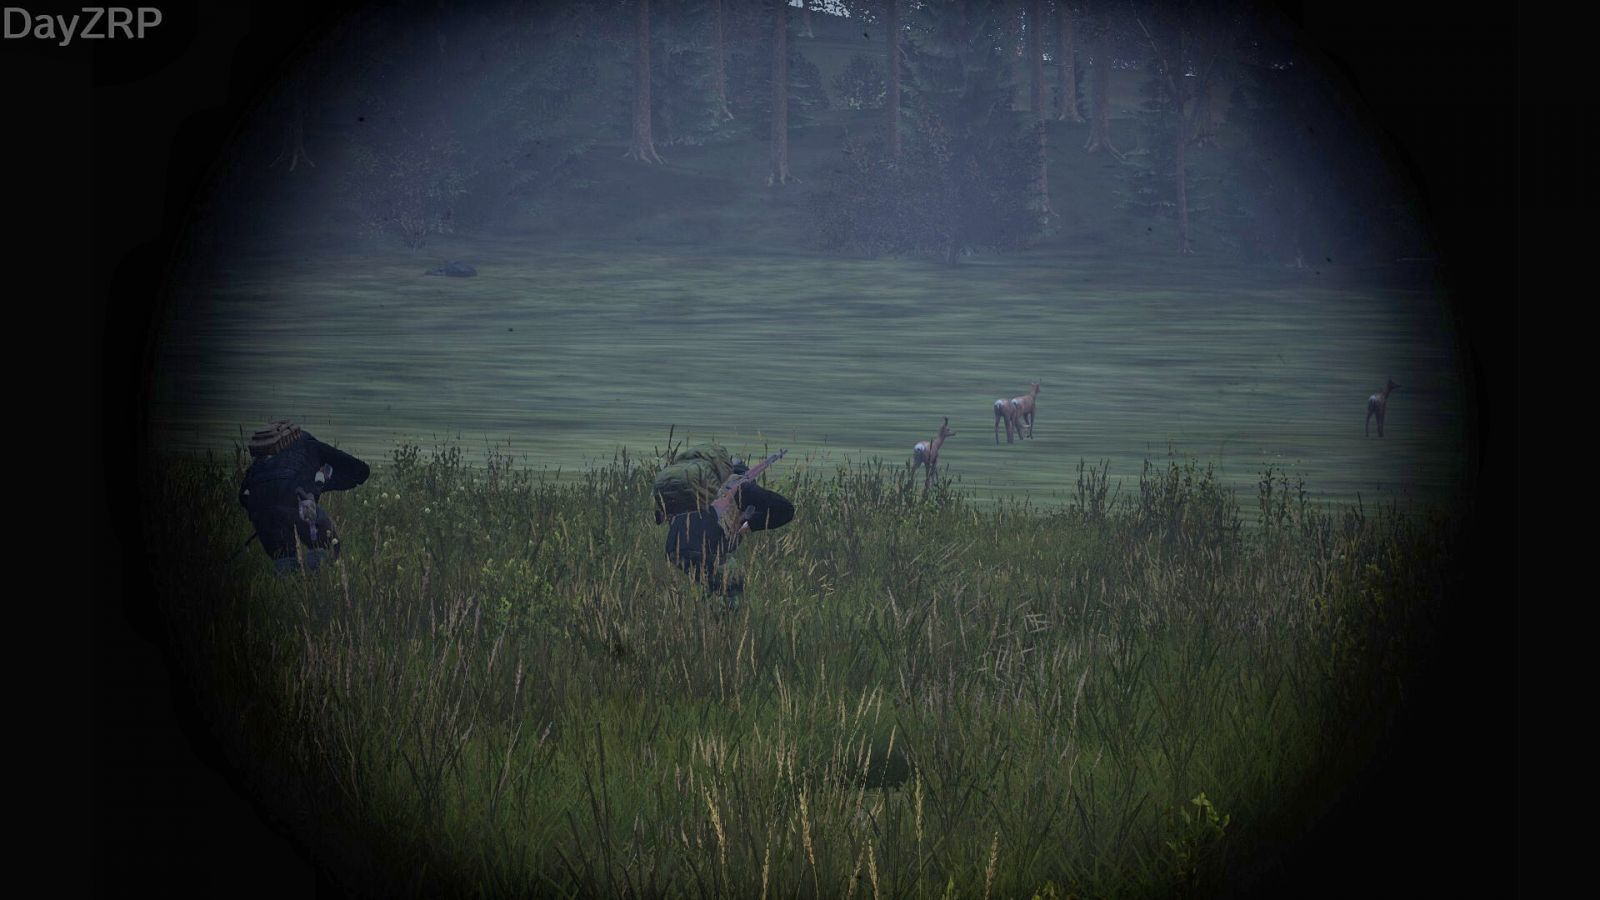 Are we the hunters? Or are we the prey?